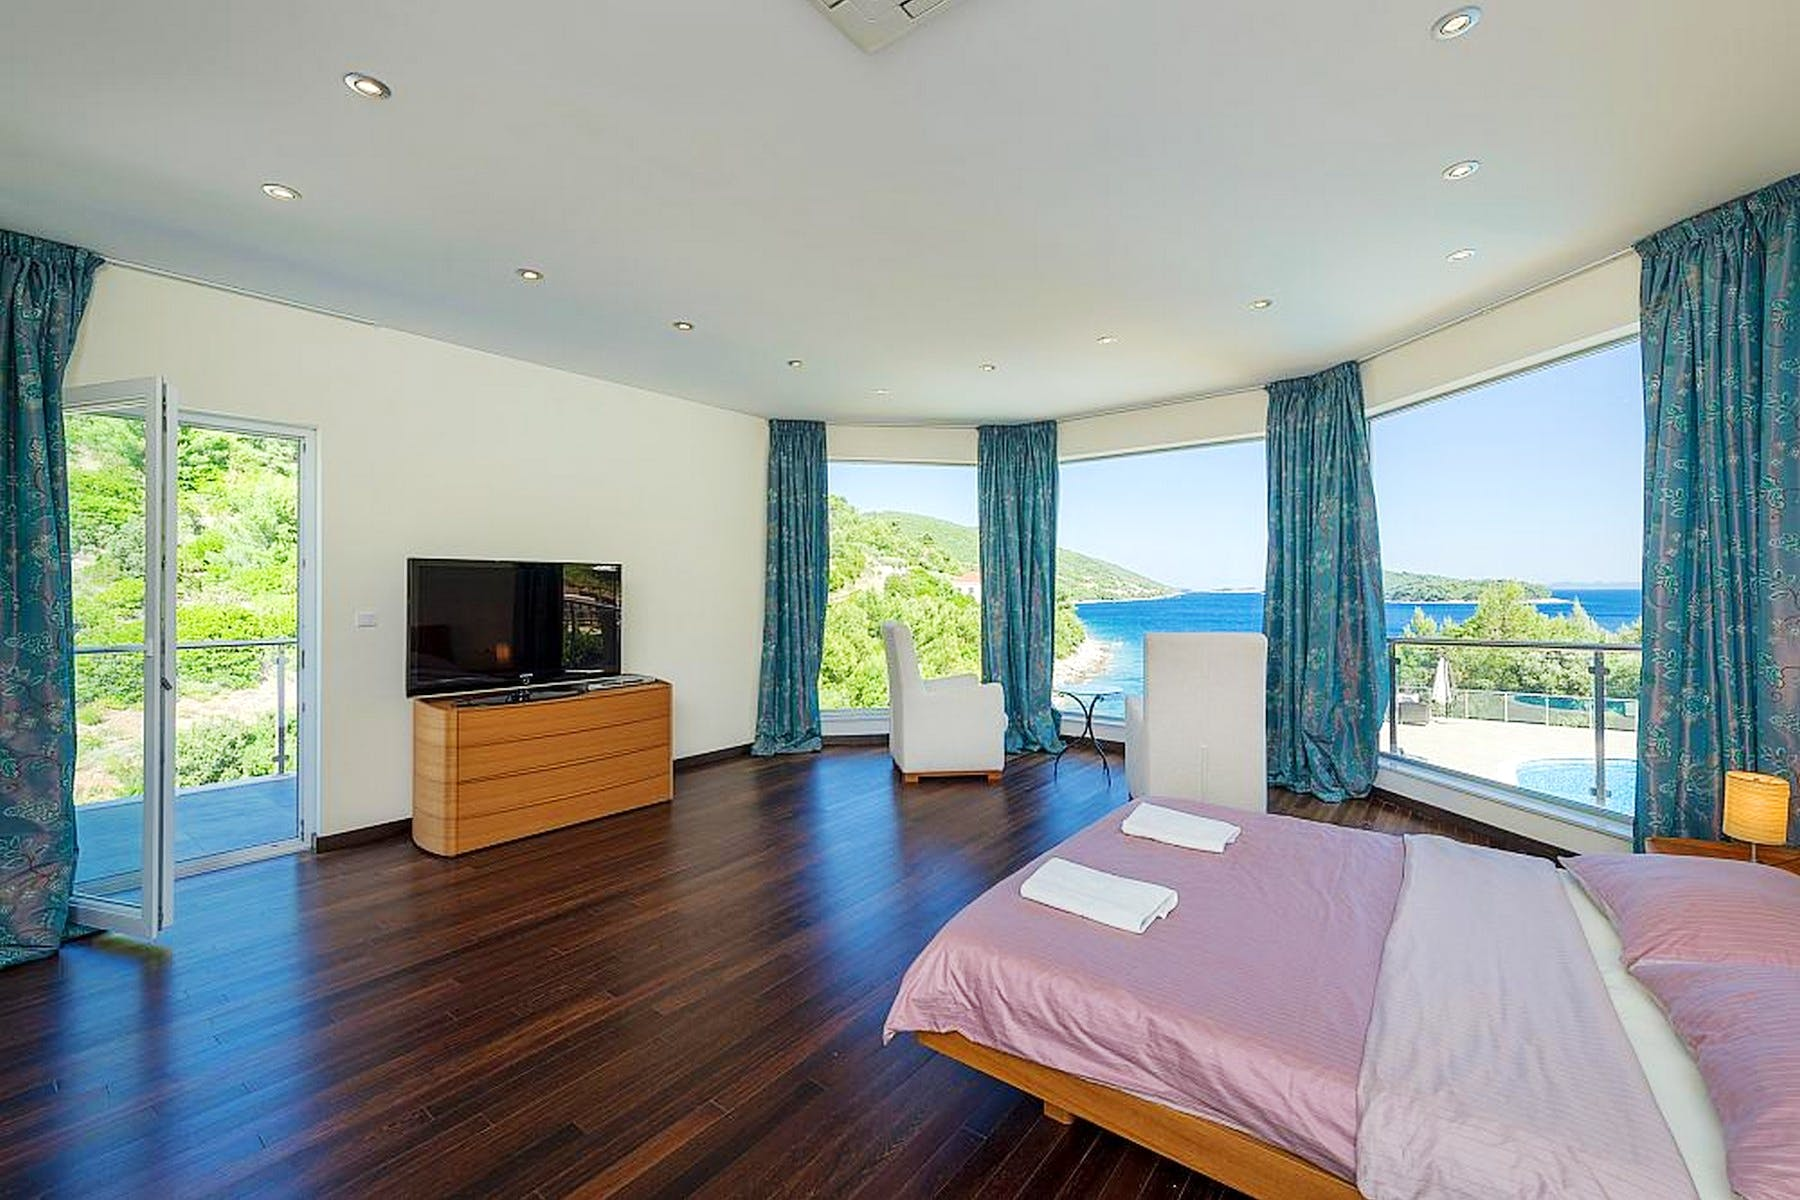 En suite bedroom with sea view